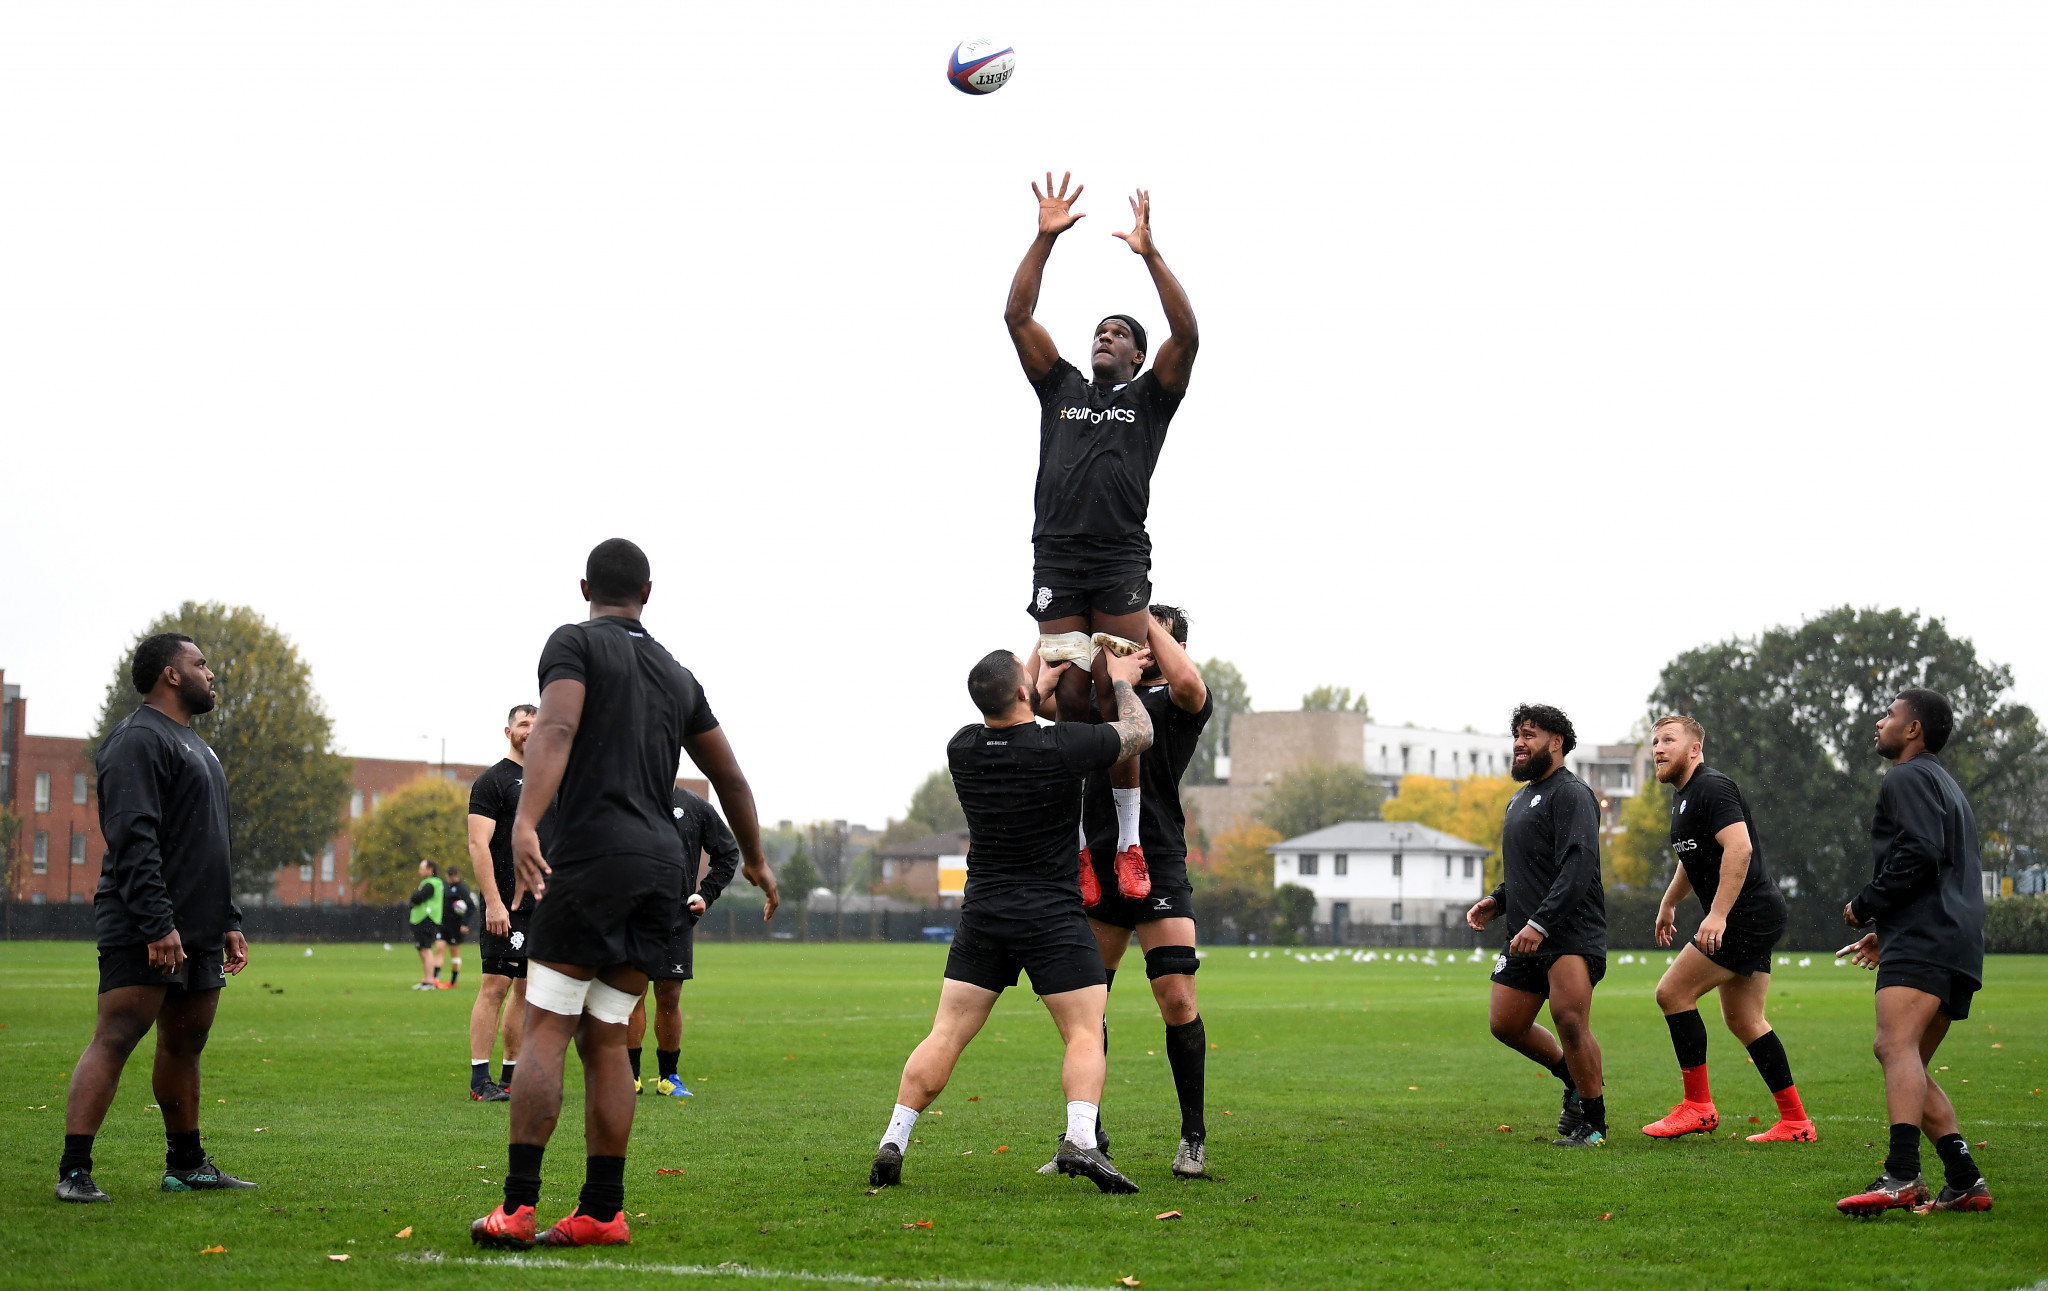 RFU to discipline Barbarians players who breached COVID-19 protocol before England match